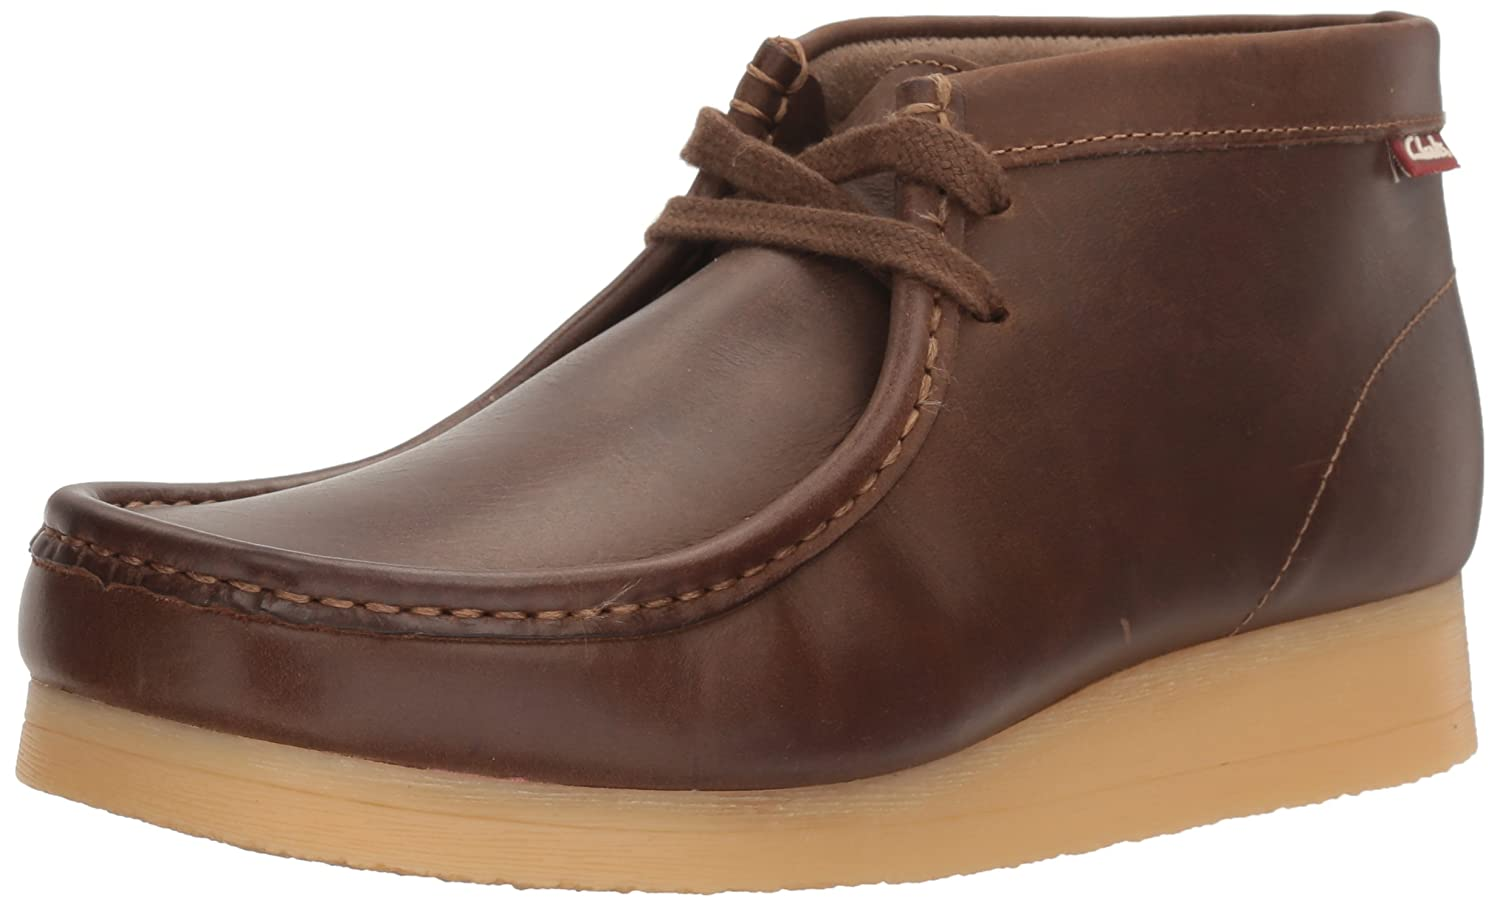 Amazon.com | Clarks Men's Stinson Hi Chukka Boot, Beeswax Leather, 13 M US  | Chukka